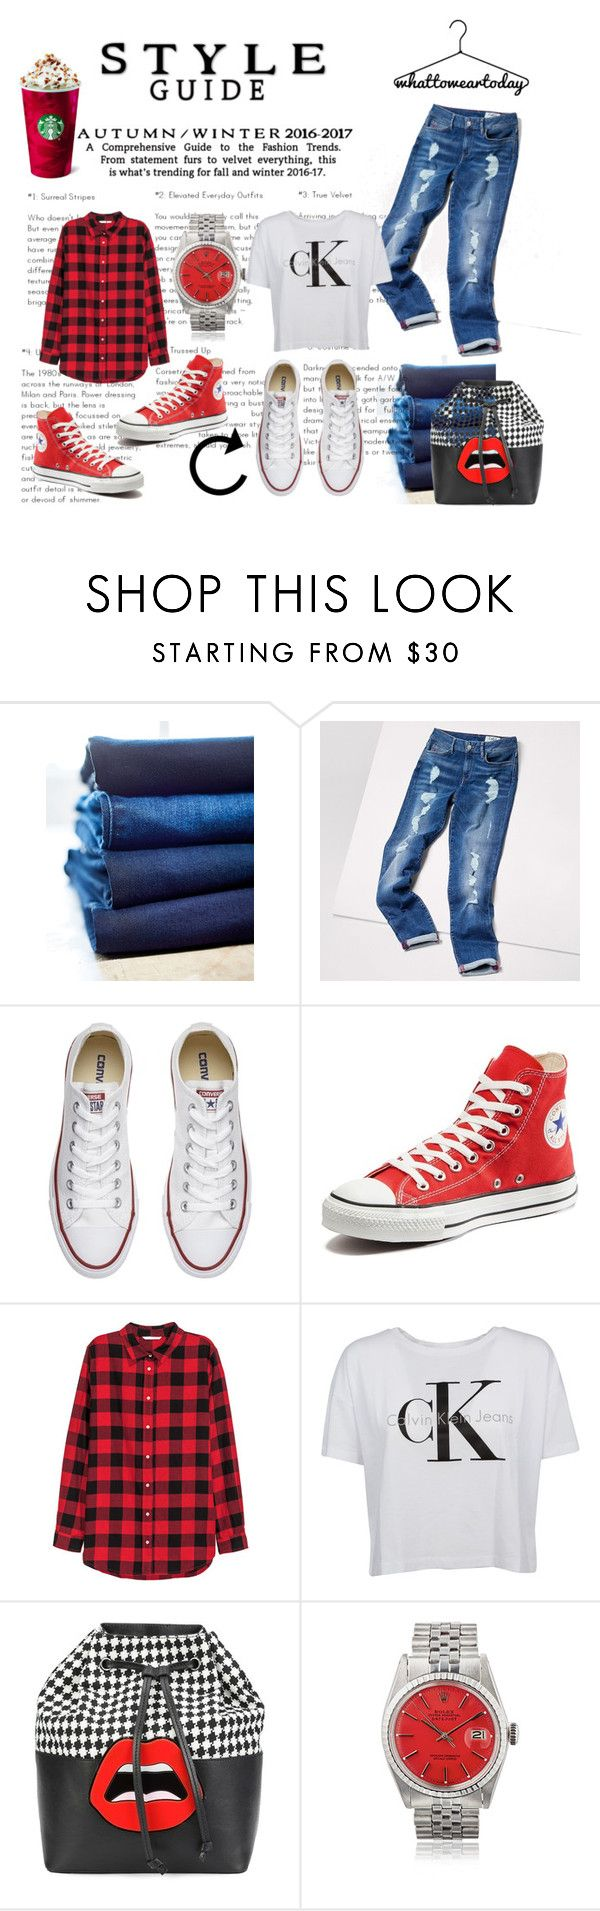 """Denim RedWhite Combo"" by iris234 on Polyvore featuring 7 For All Mankind, Tommy Hilfiger, Converse, Calvin Klein and Yazbukey"